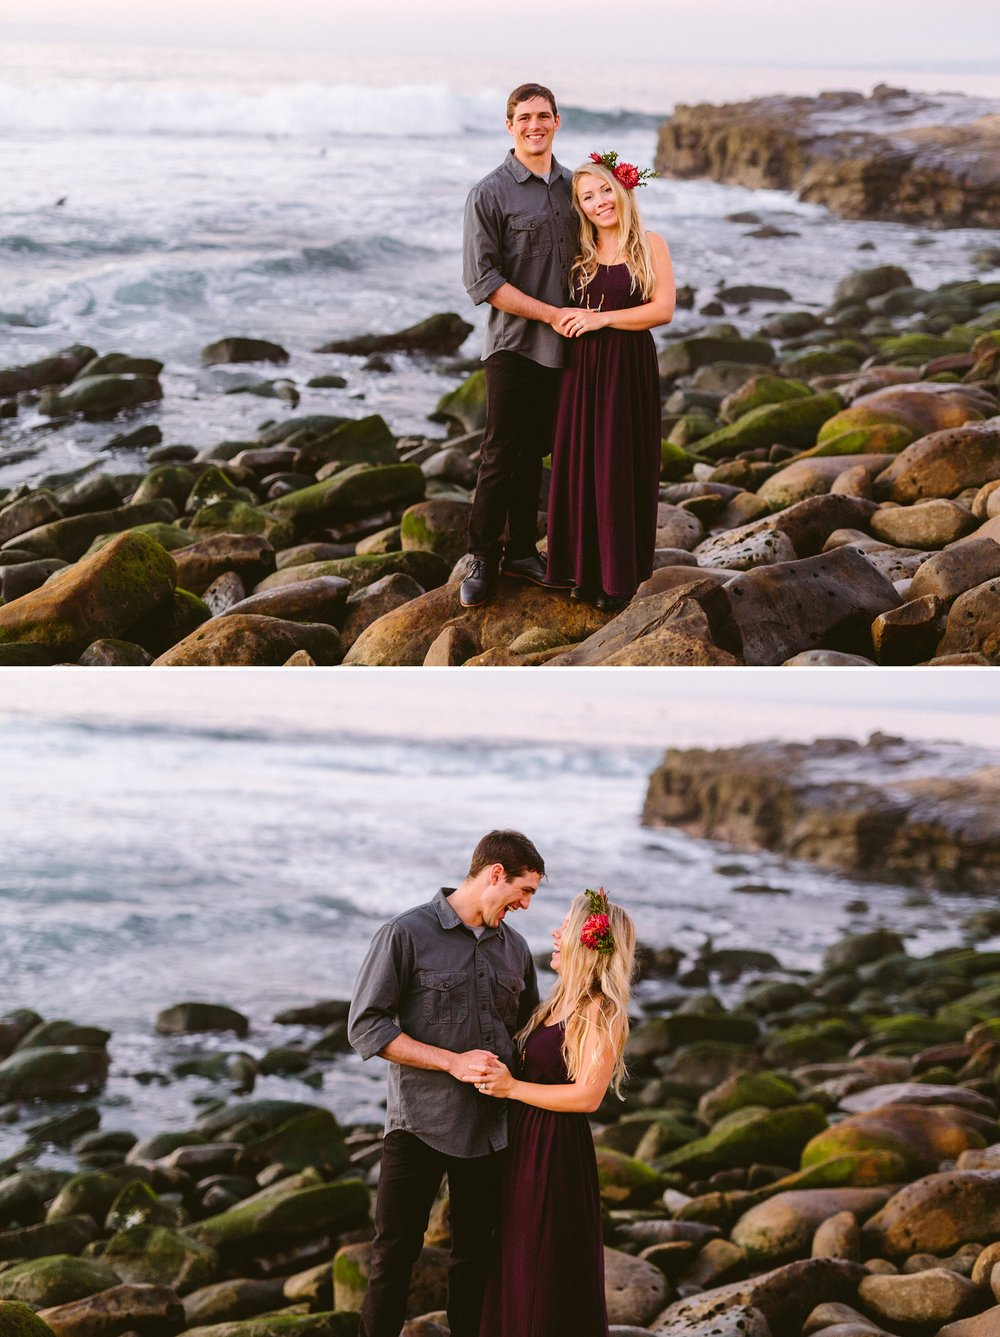 la jolla cove | victoria heer photography | california wedding photographer | san diego wedding photographer | san diego anniversary photographer